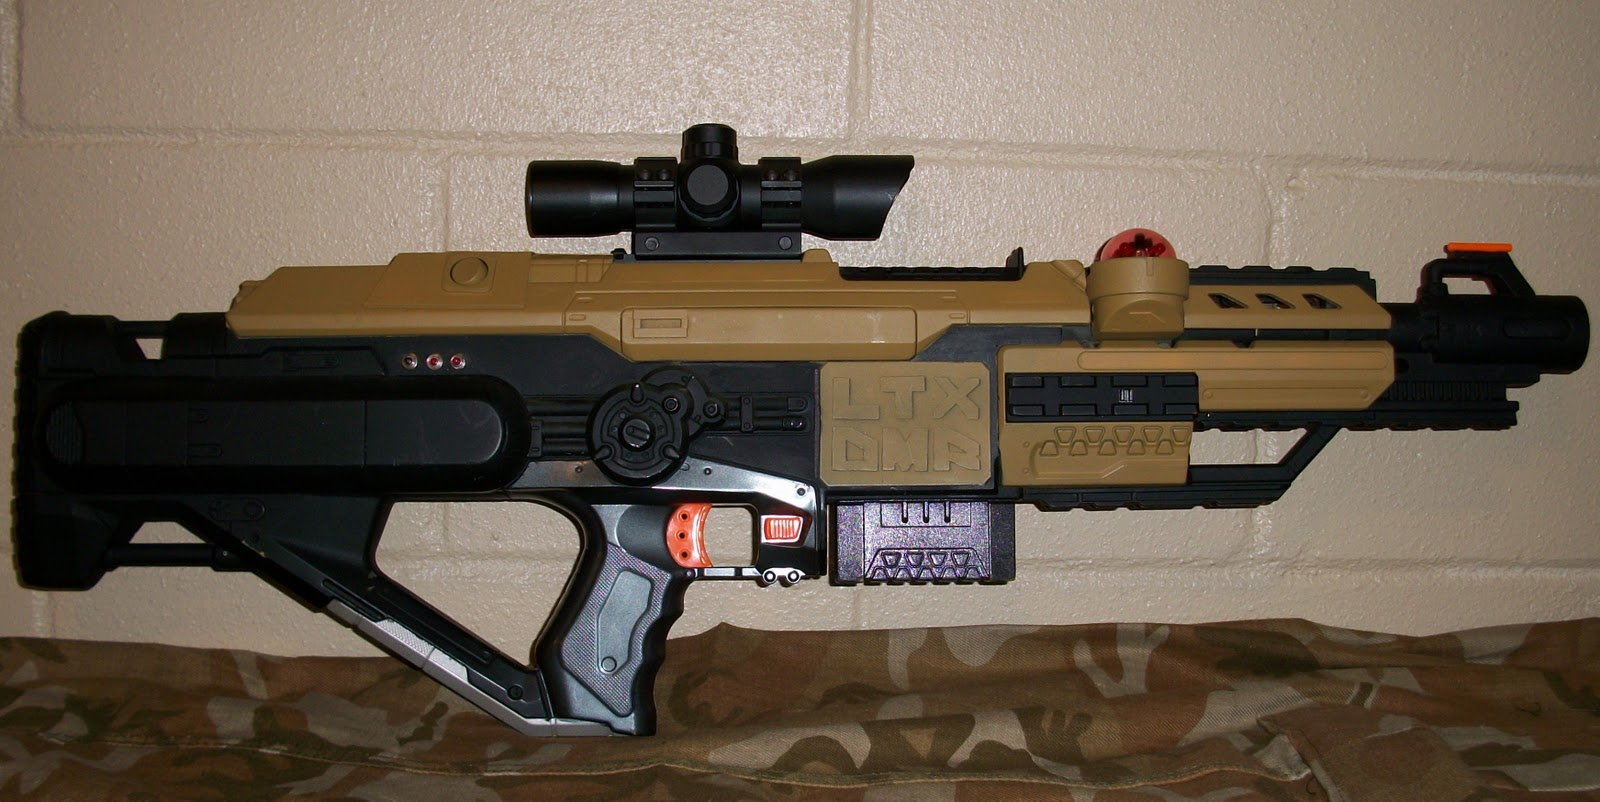 Urban Taggers Tactical Tag Ltx Dmr Complete